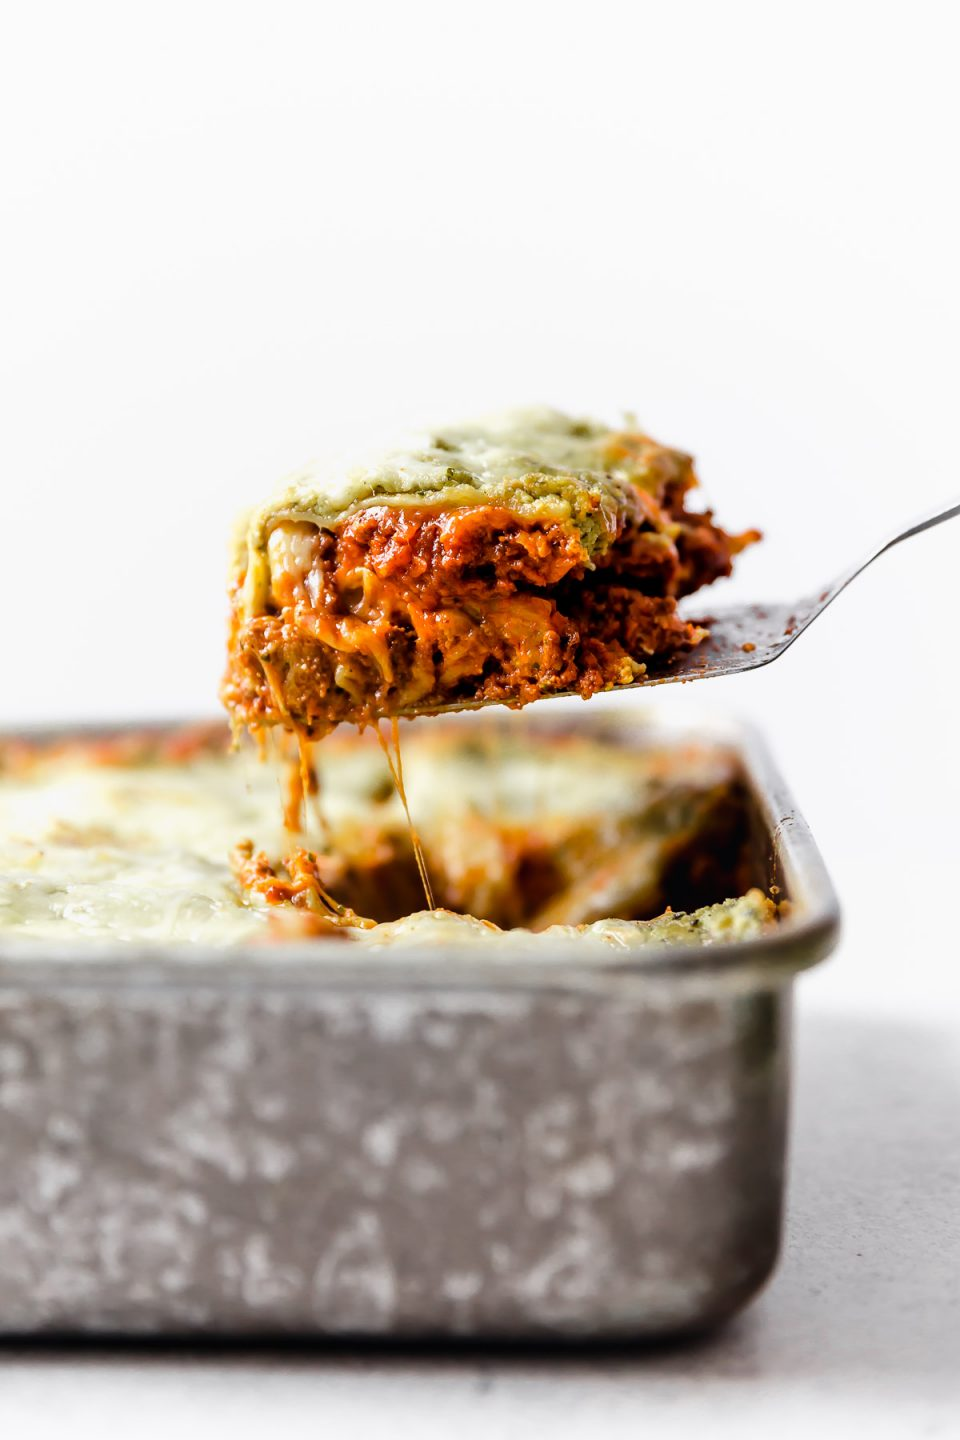 Lifting a slice of lasagna out of its metal baking dish.